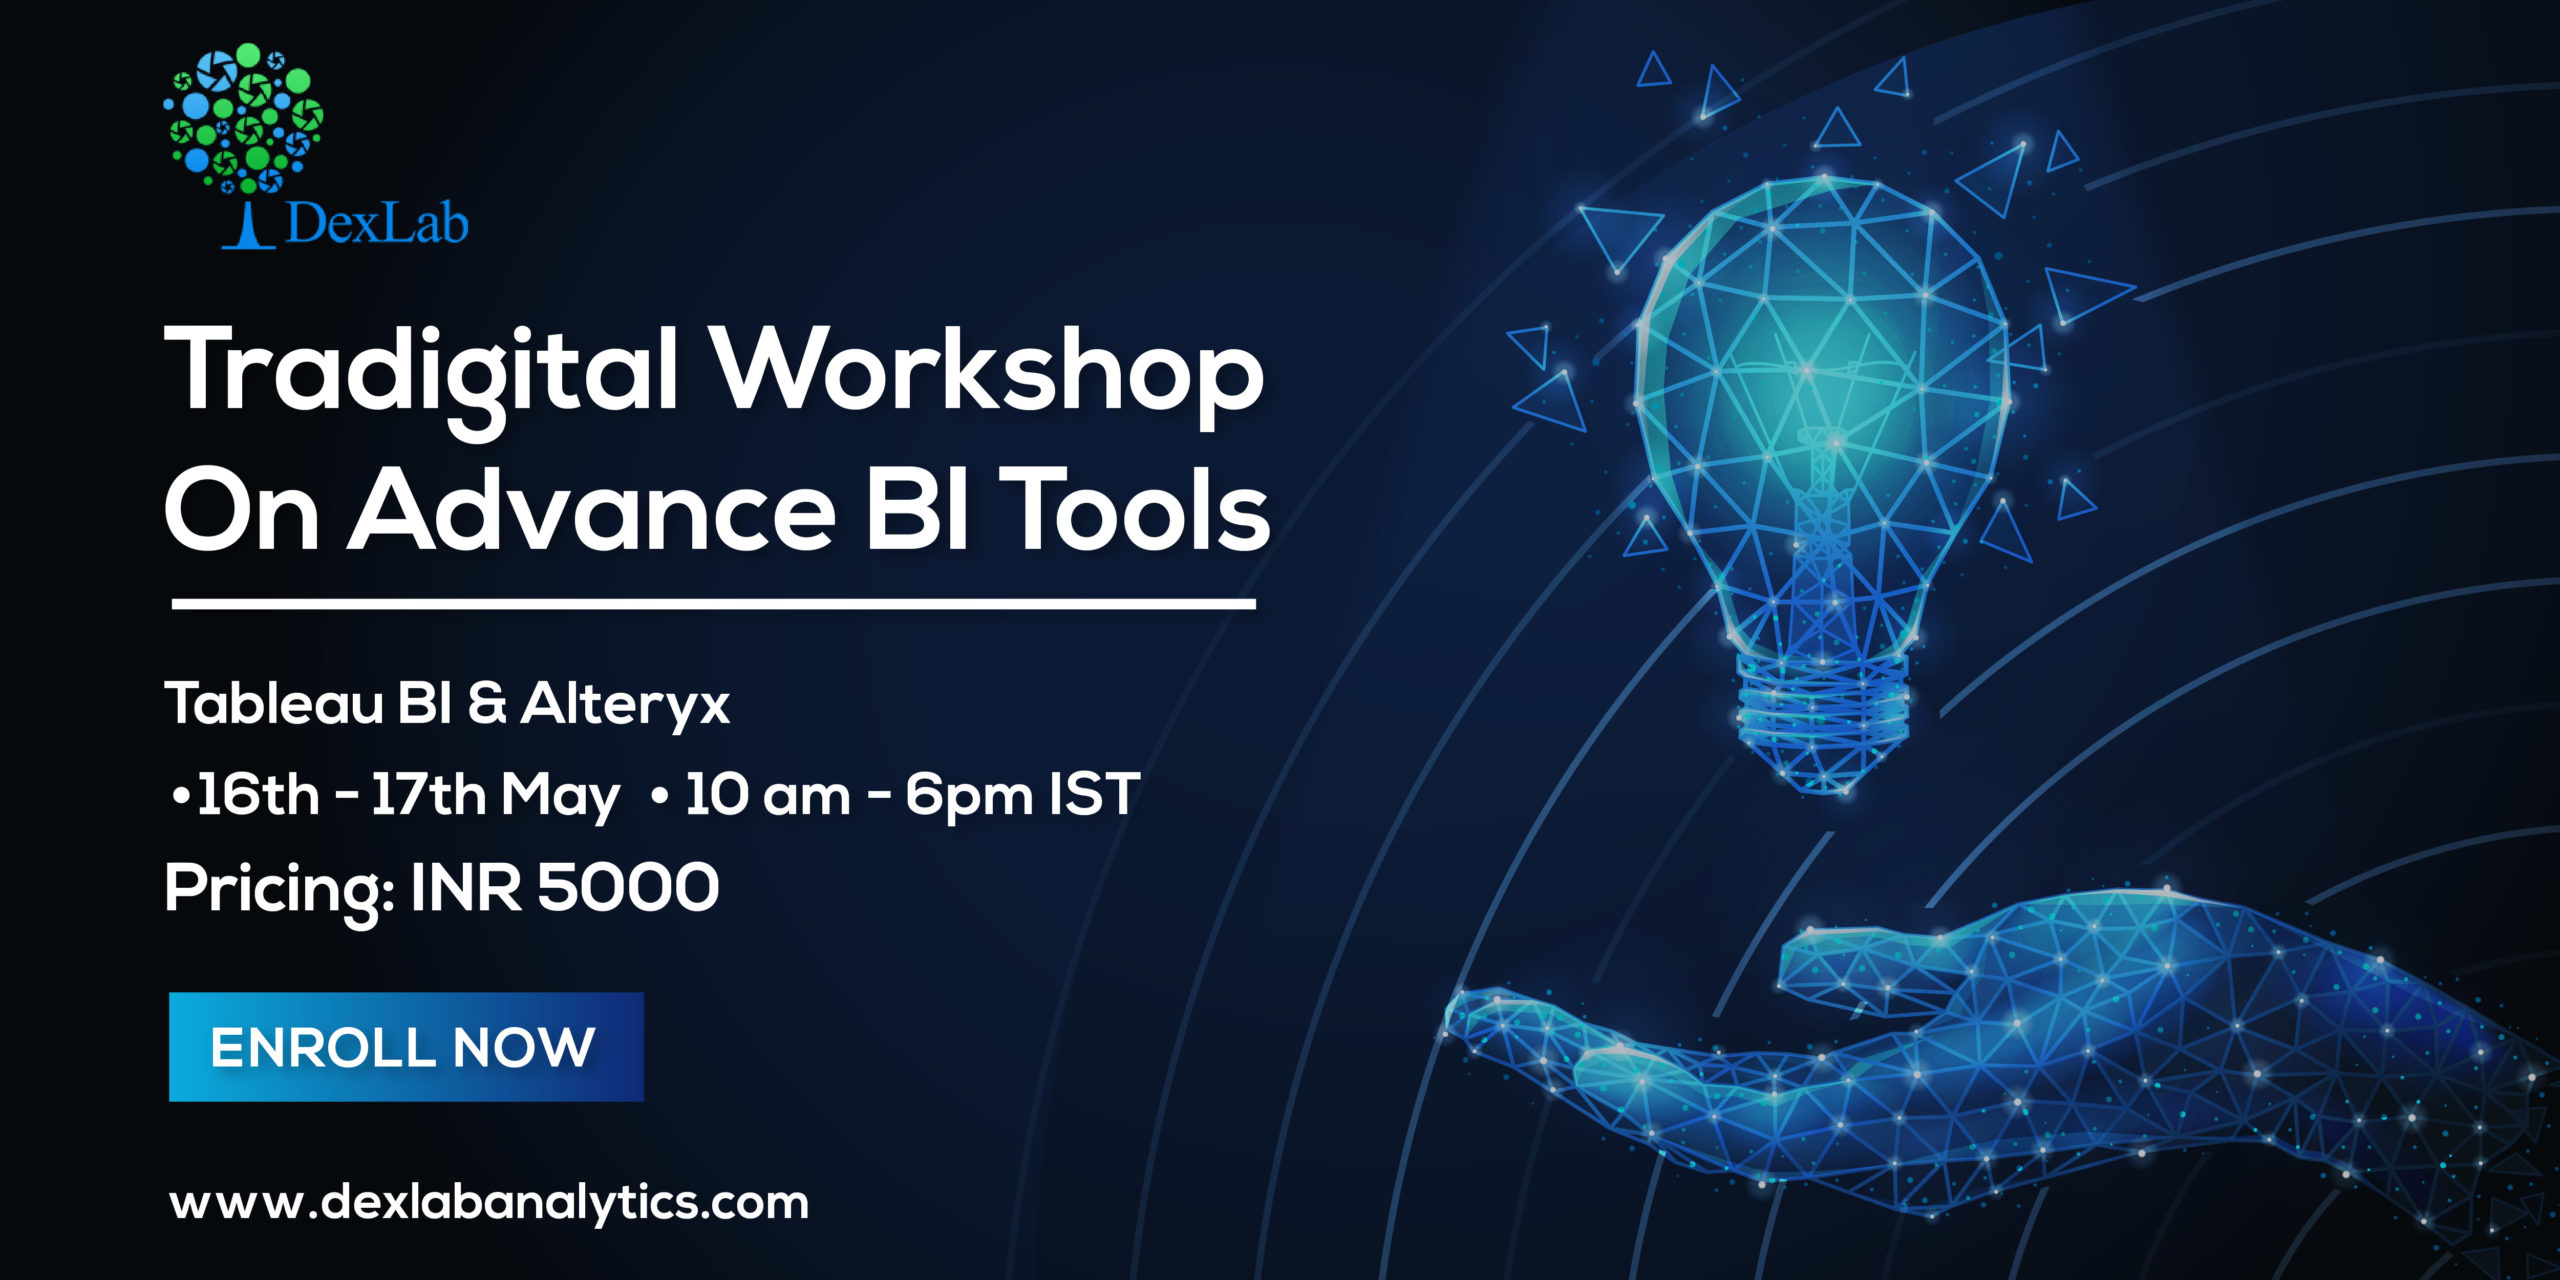 Tradigital Workshop On Advance BI Tools